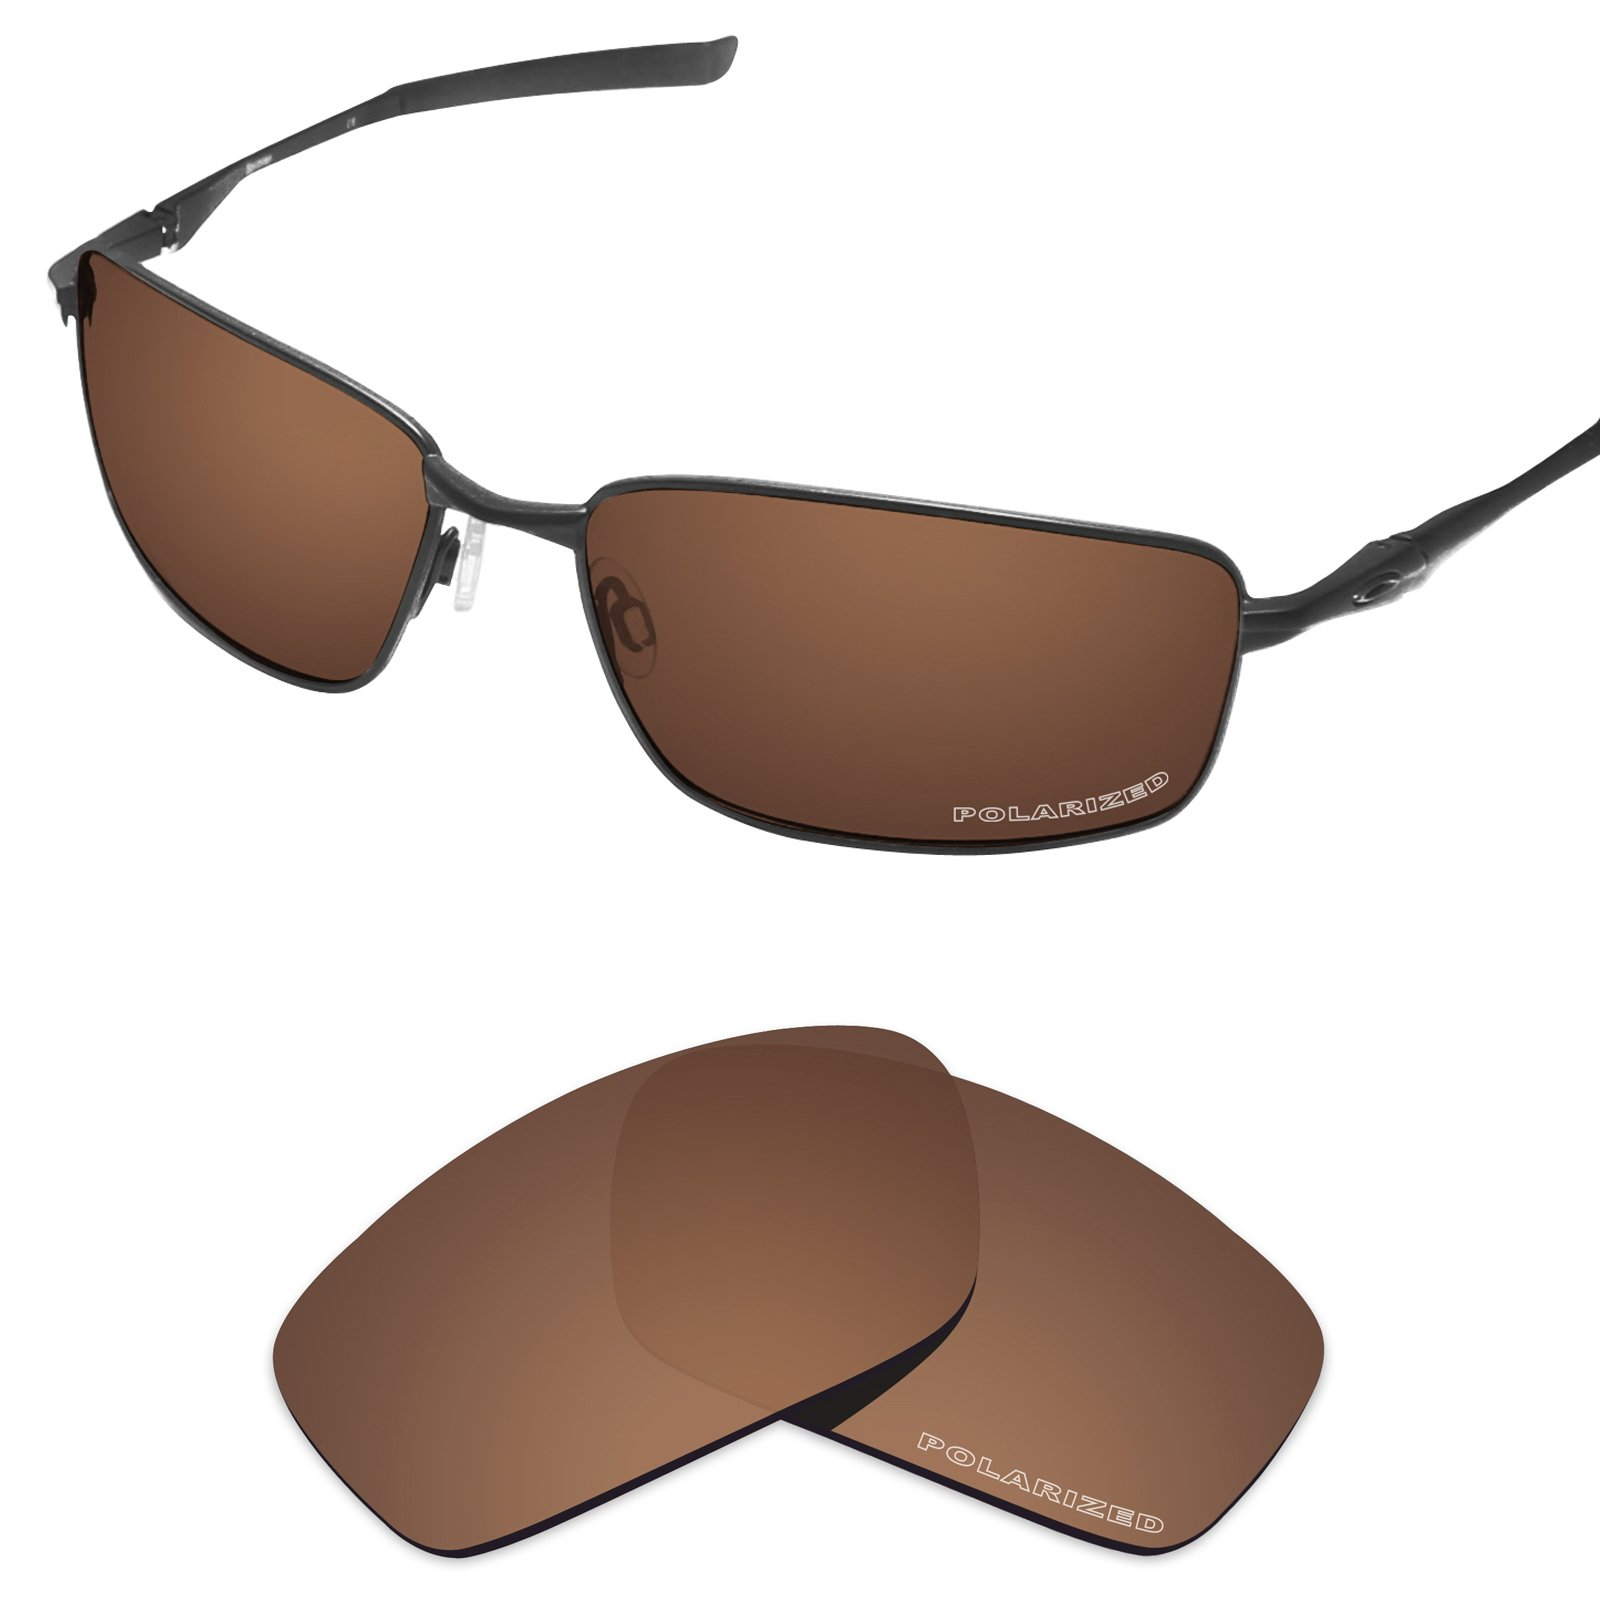 Tintart Performance Replacement Lenses for Oakley Splinter Sunglass Polarized Etched-Nut Brown